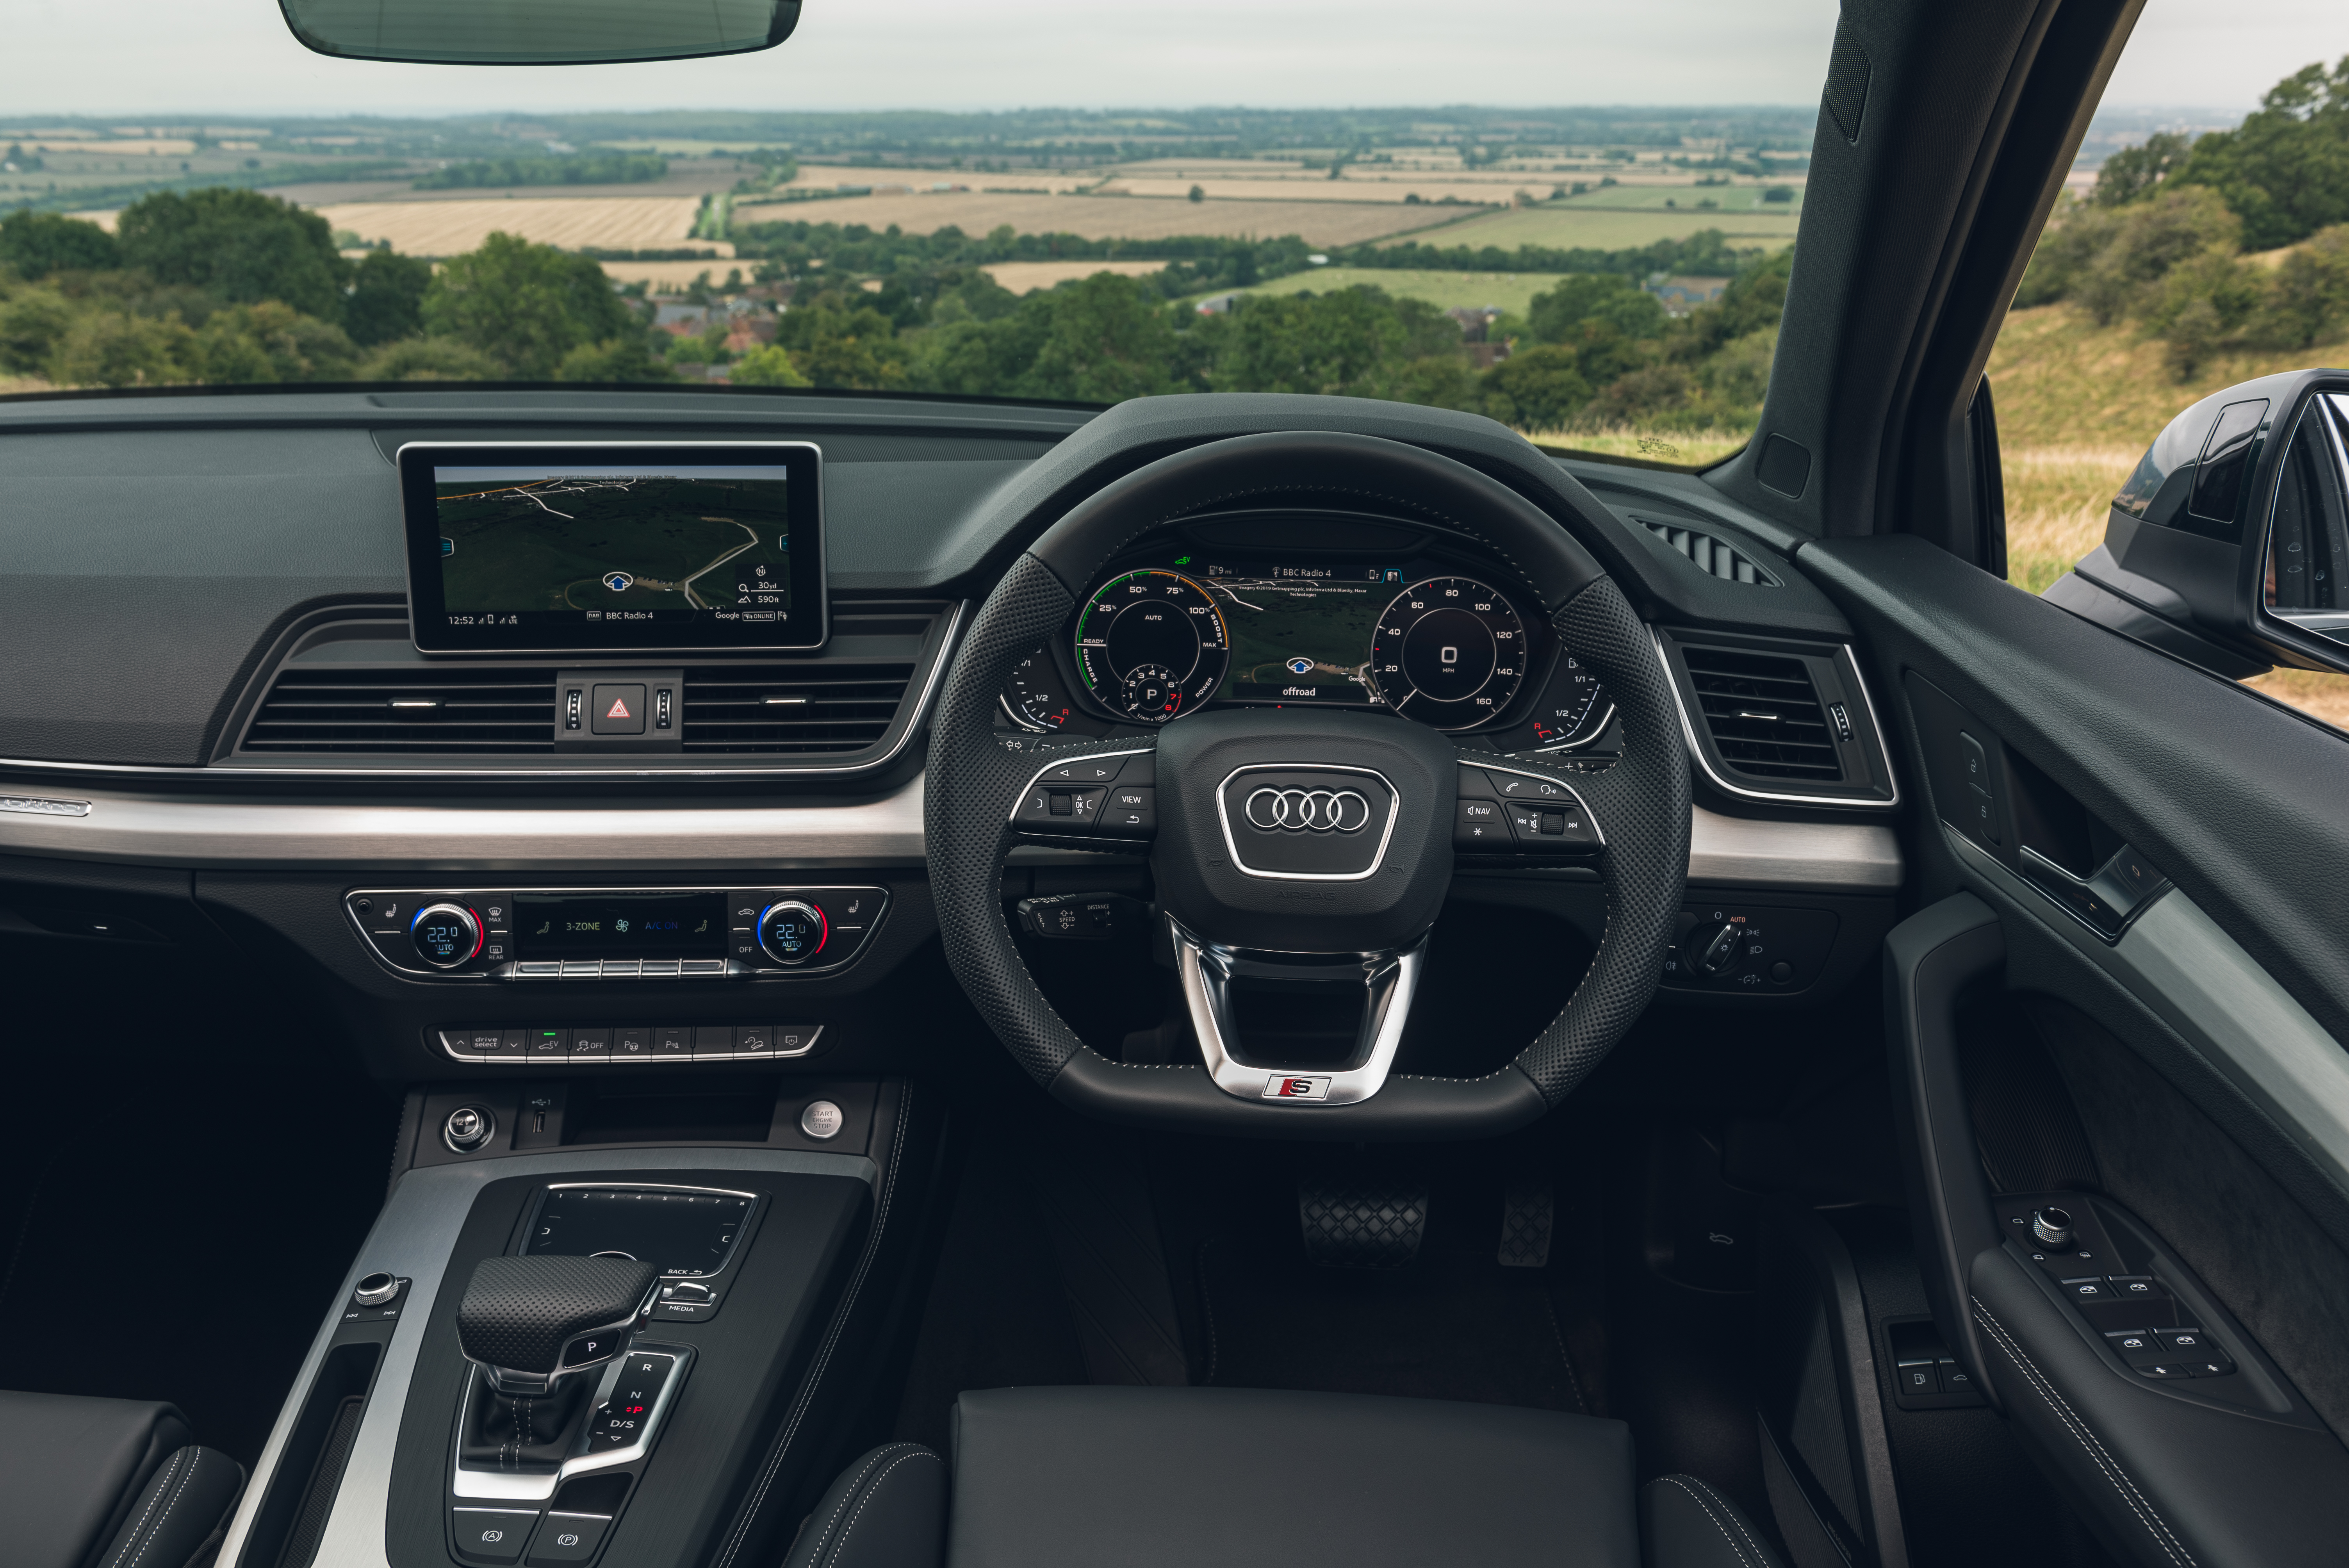 The Q5's interior is very well built